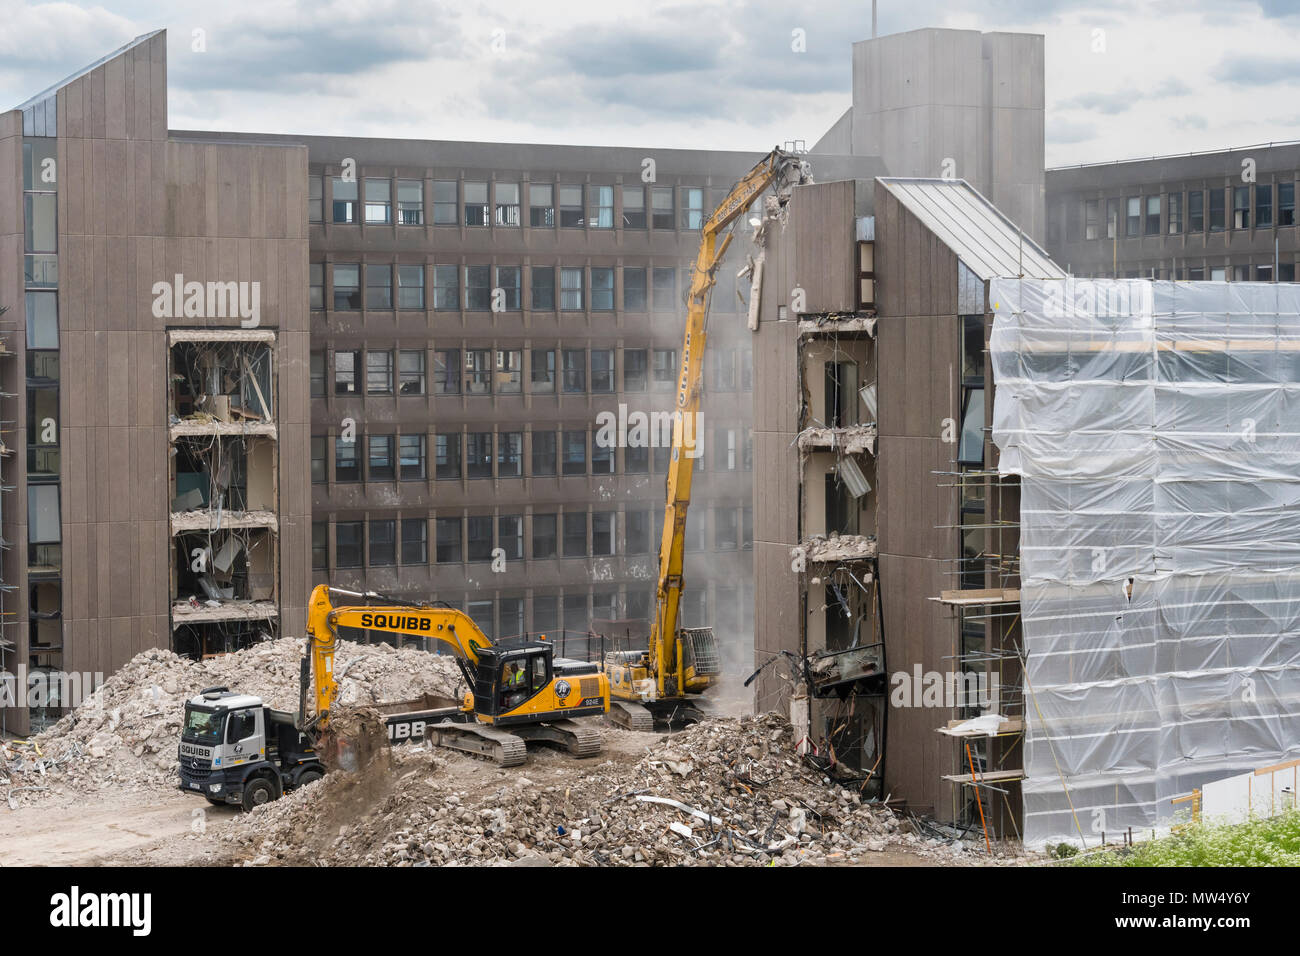 High view of demolition site with rubble, heavy machinery (excavators) working & demolishing empty office building - Hudson House  York, England, UK. - Stock Image